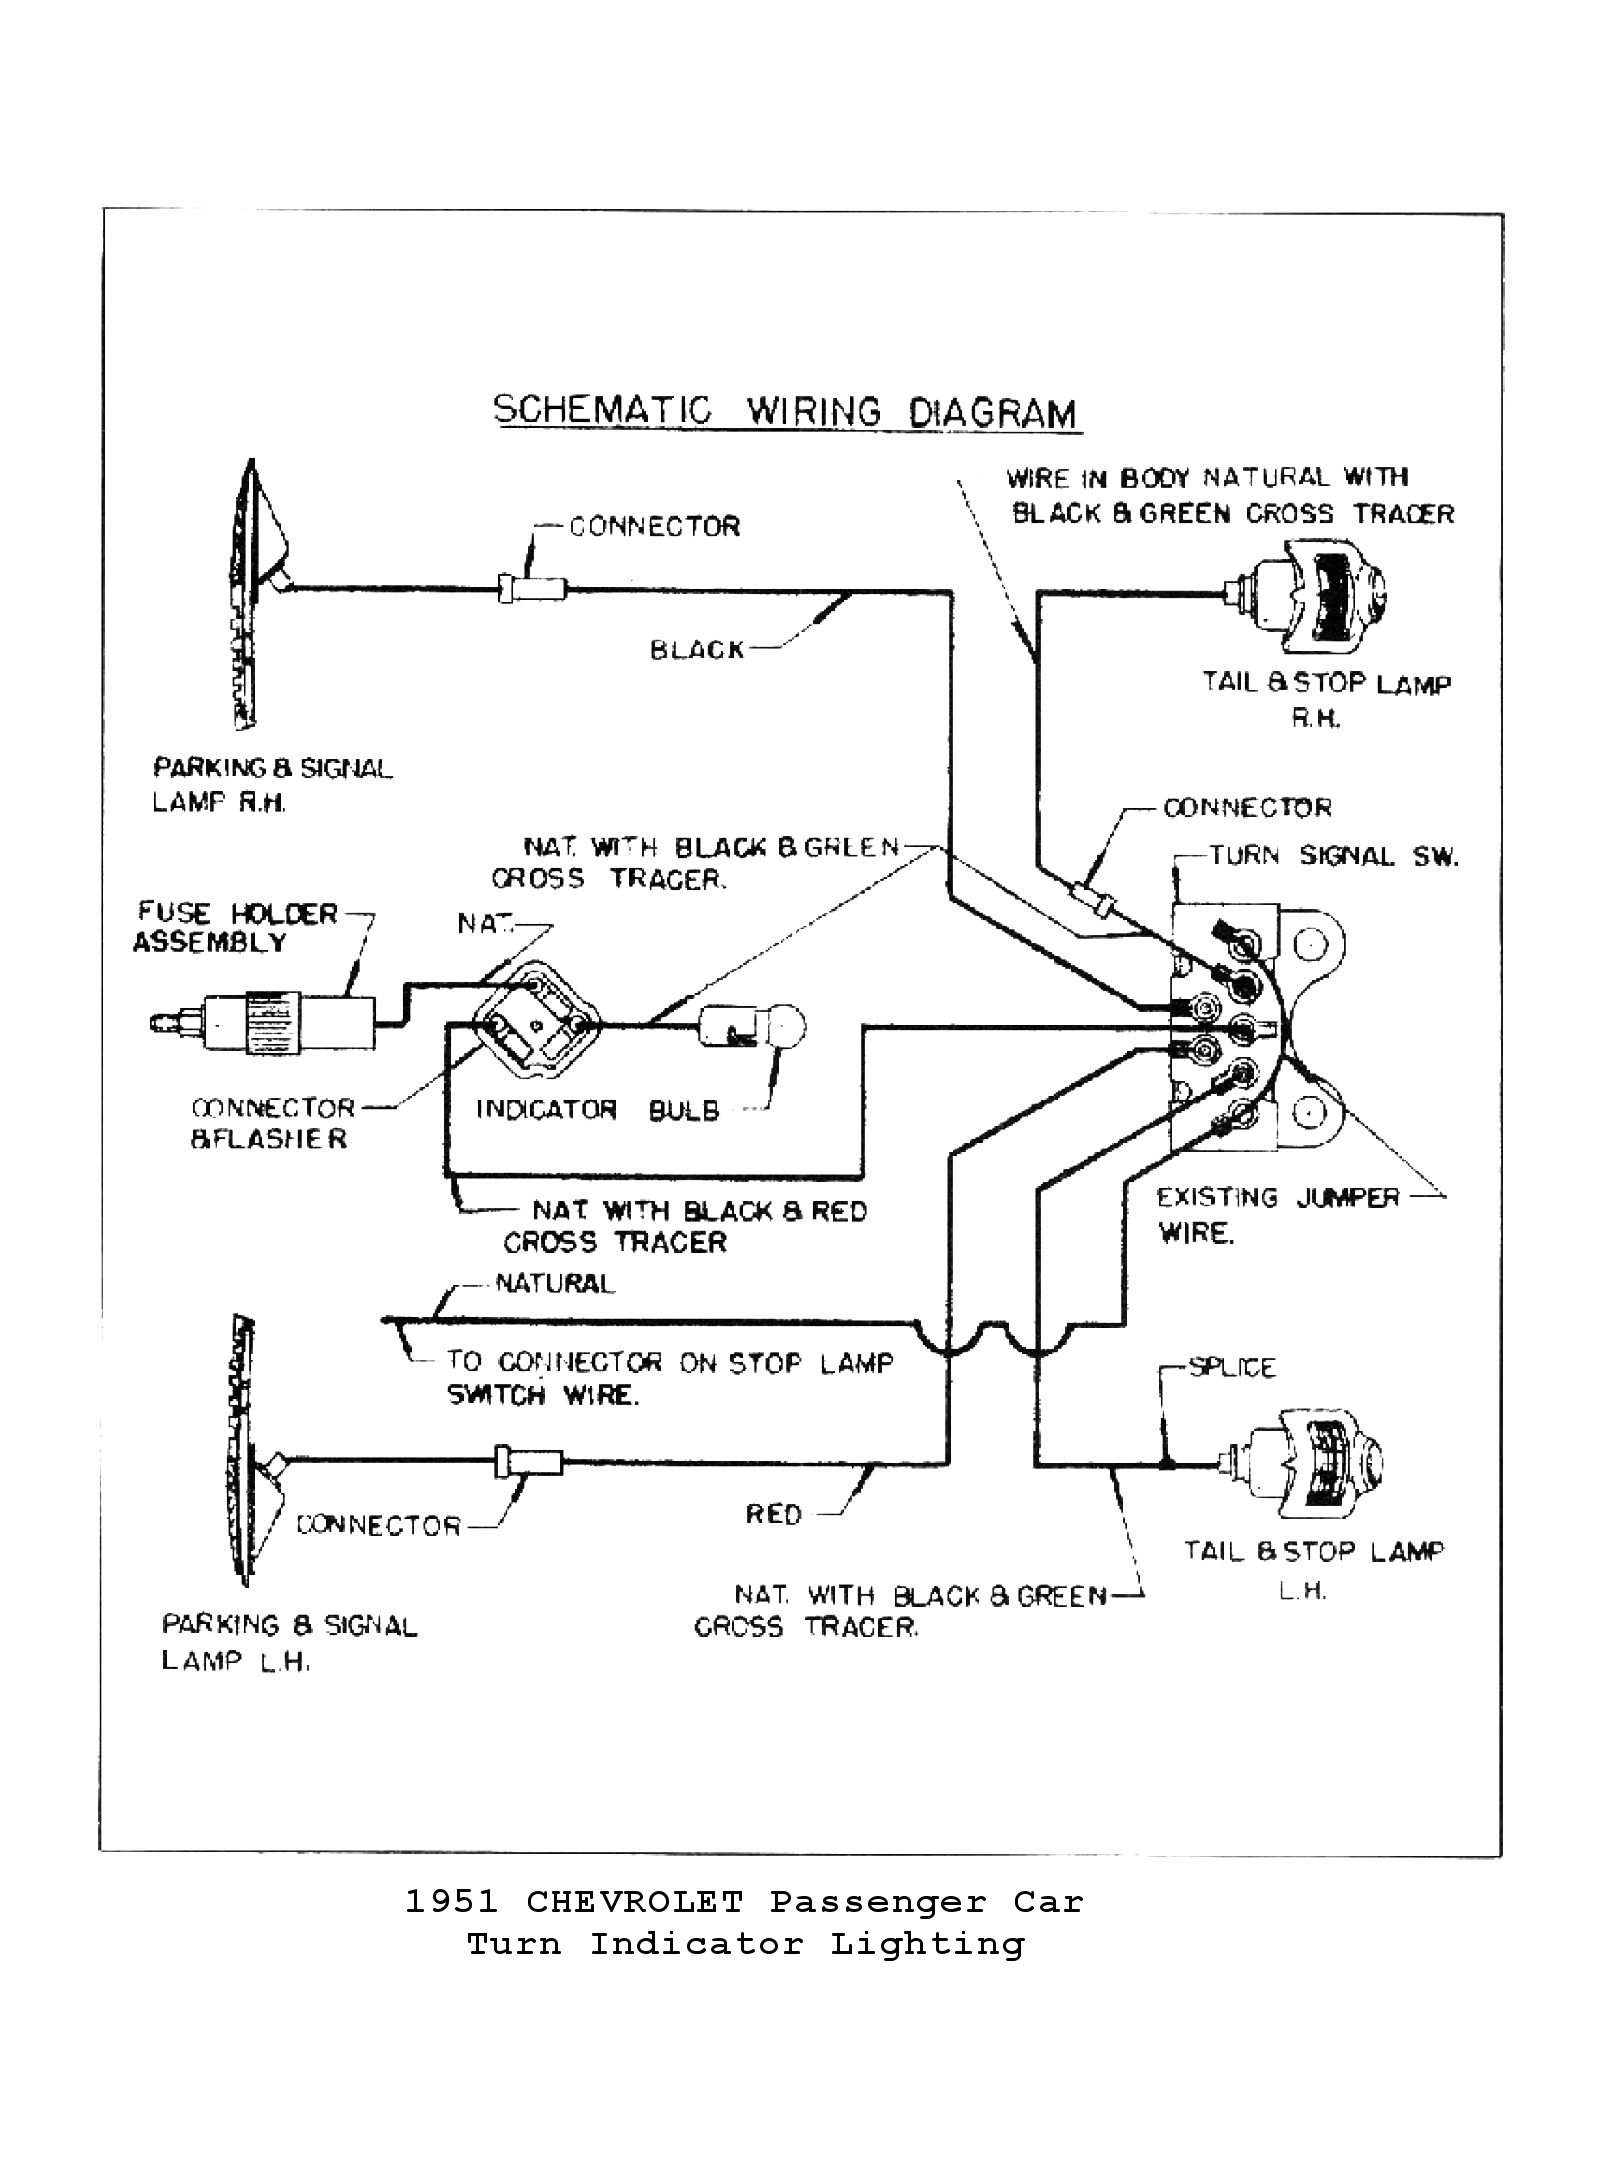 5152turnsignals 55 chevy heater diagram wiring schematic wiring diagram simonand 66 Chevy Headlight Switch Wiring Diagram at nearapp.co